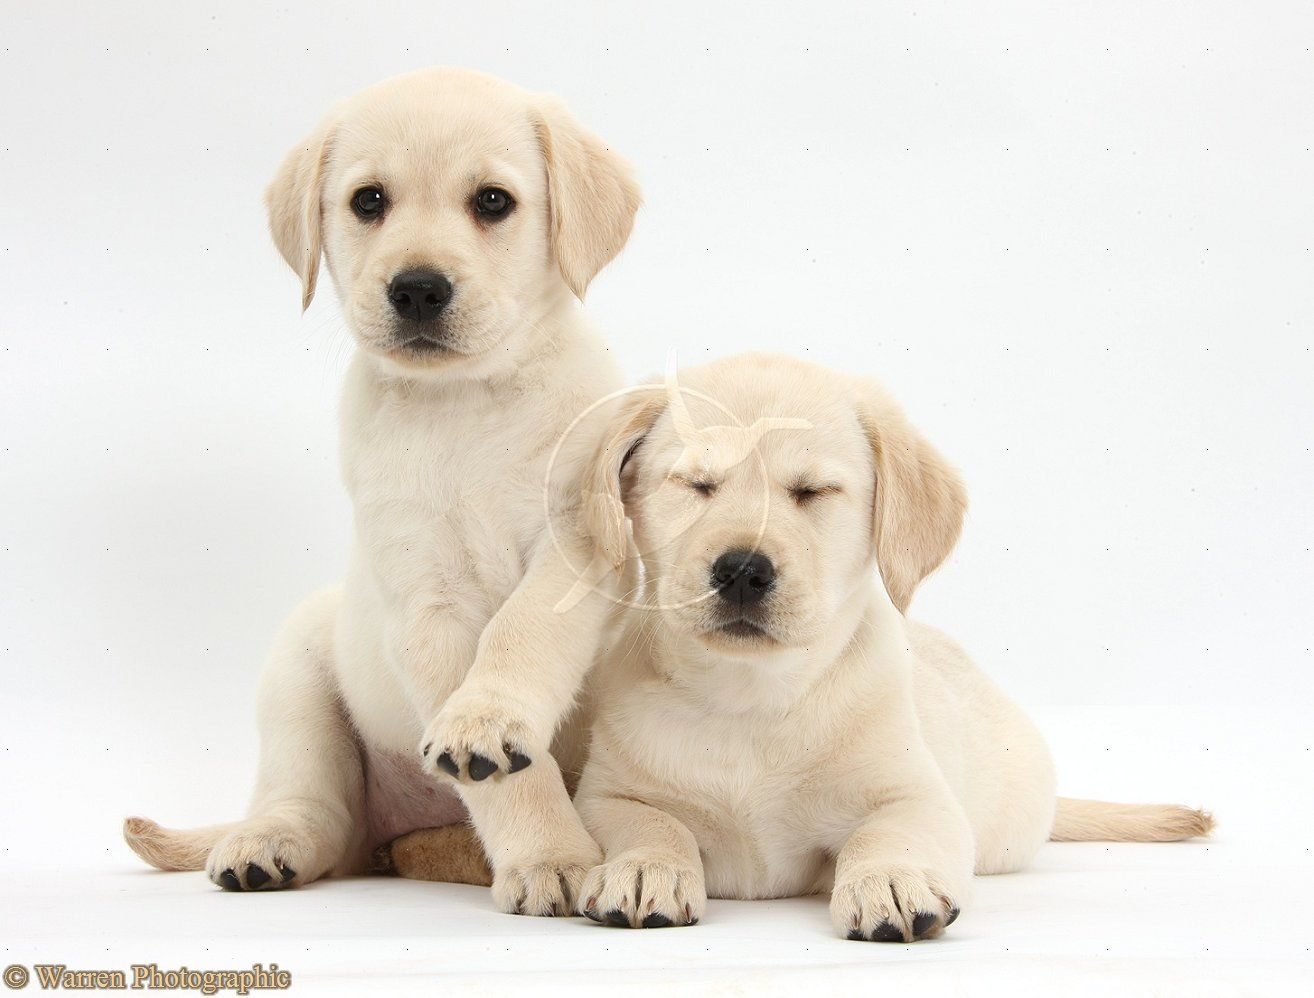 White Lab Dogs Yellow Labrador Retriever Puppies 8 Weeks Old